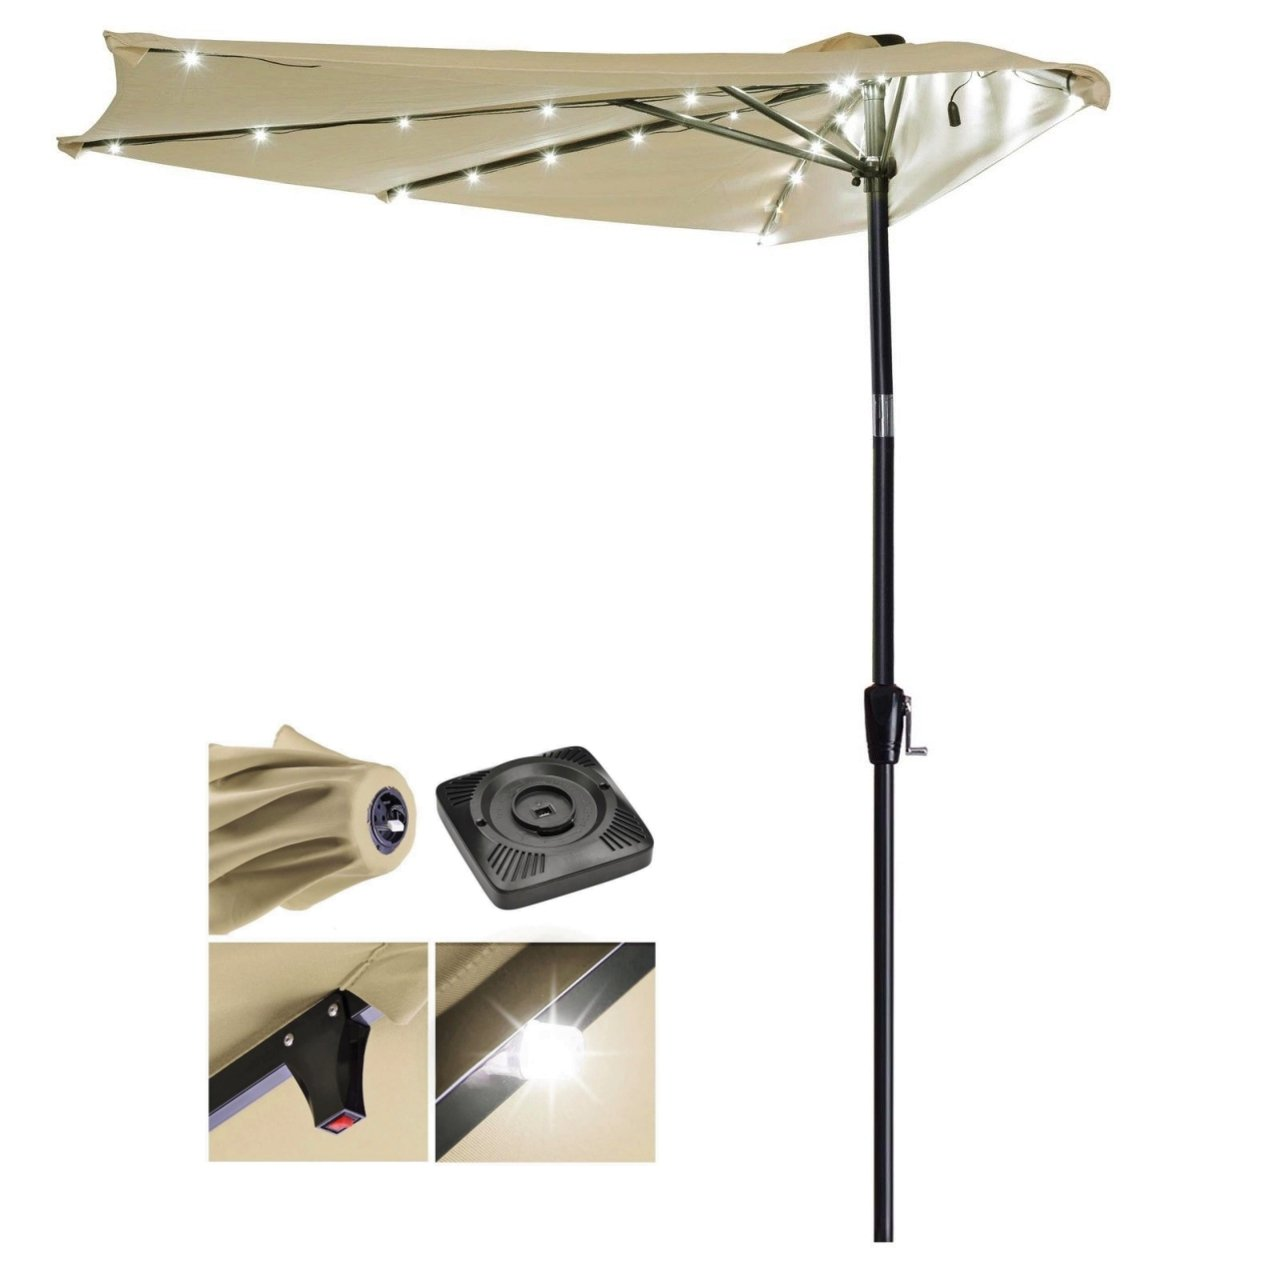 New UV Blocking 9ft Half Umbrella Patio Outdoor Bistro Balcony Wall Window Sunshade W/Solar Power LED #907a